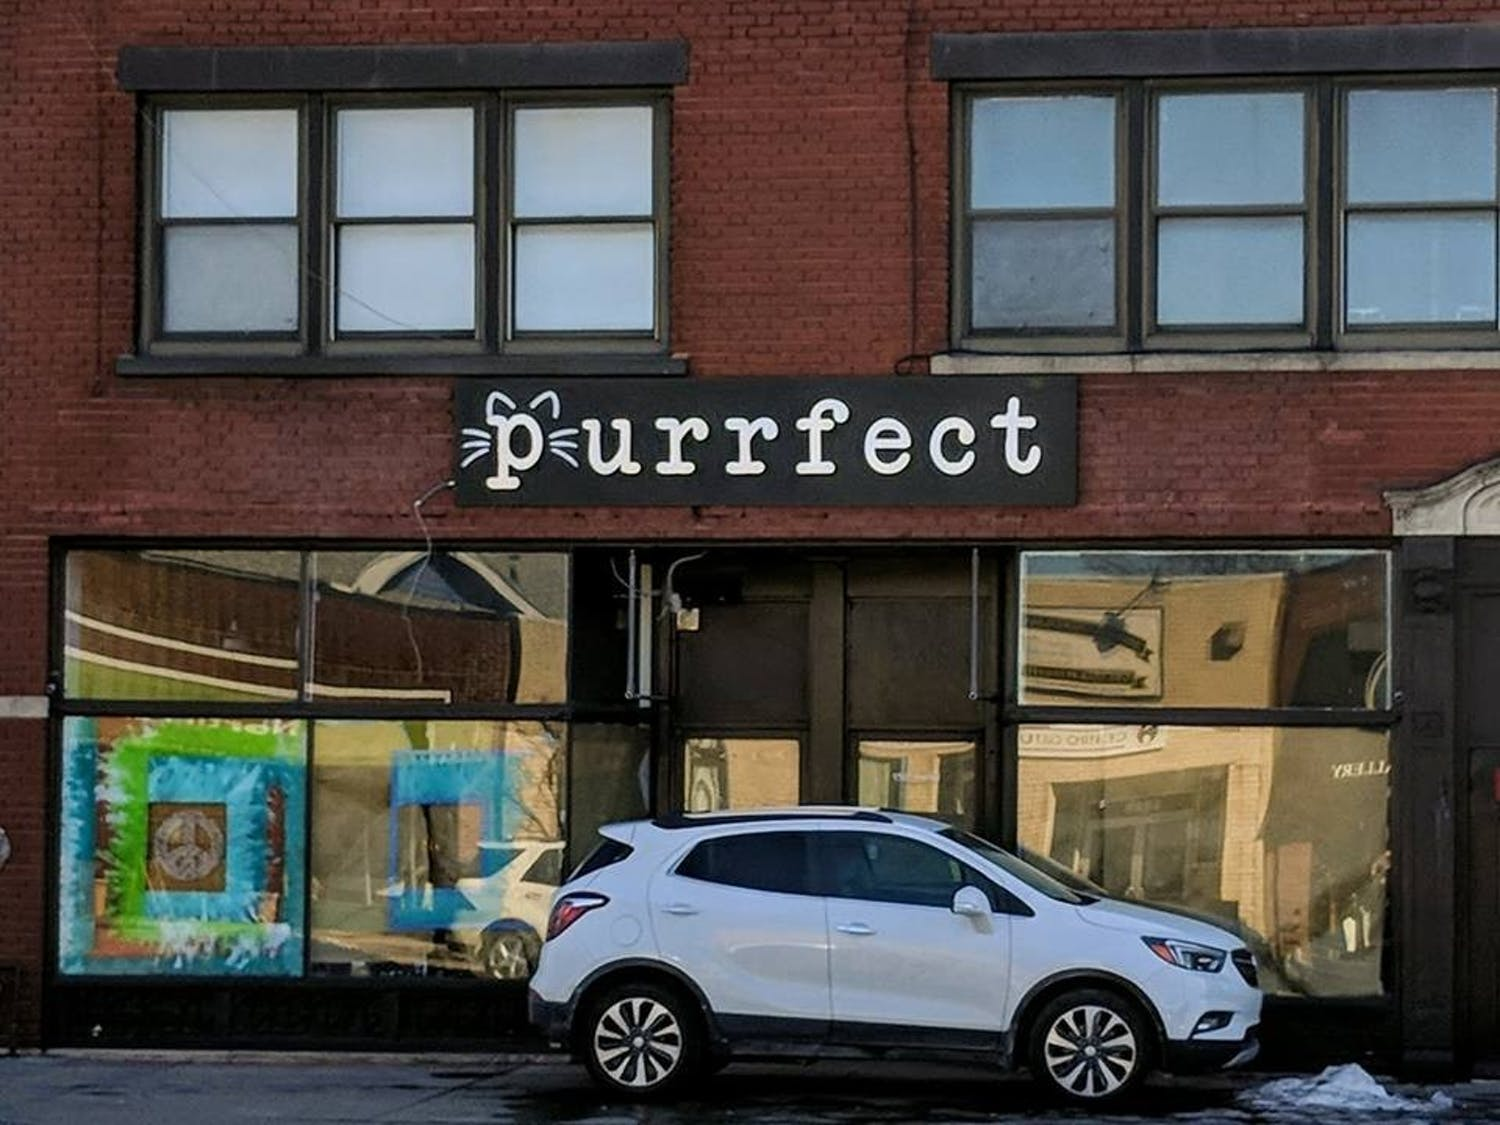 Roughly a dozen furry creatures will roam Buffalo's first ever cat cafe. The cafe will be located just a few minutes from UB's South Campus and feature an adjacent, full-service restaurant.